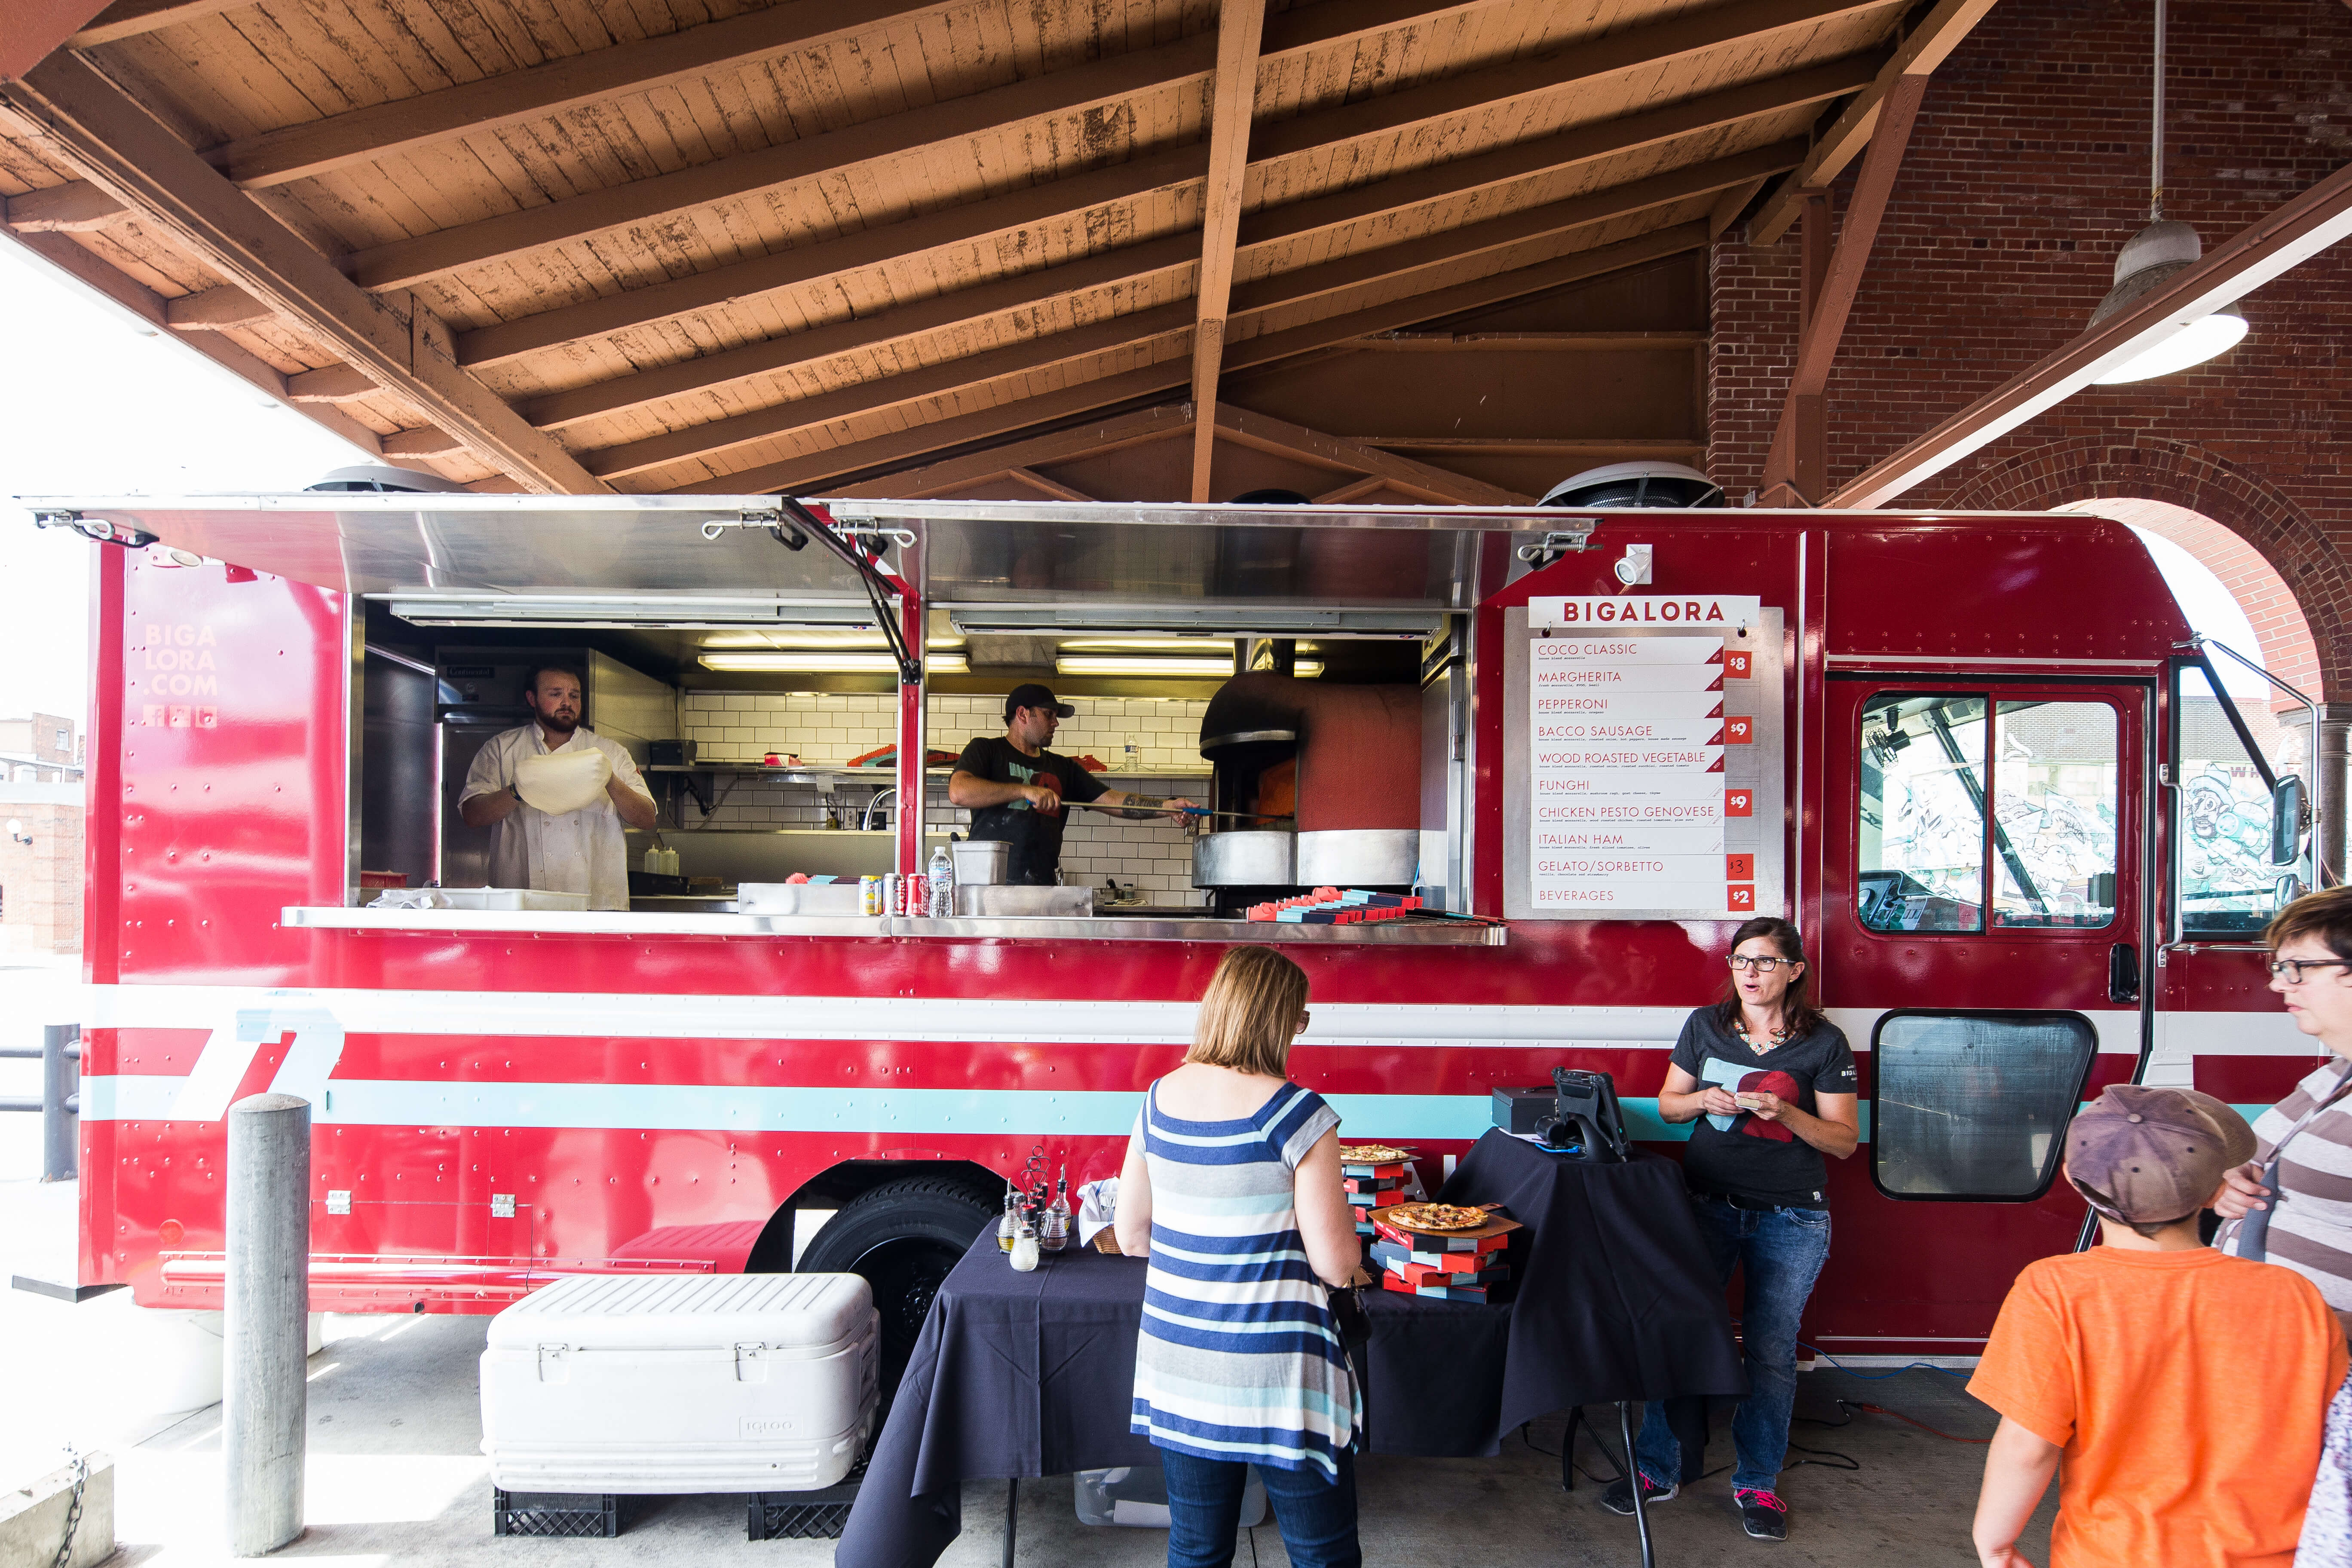 Food Truck  Bigalora Wood Fired Cucina